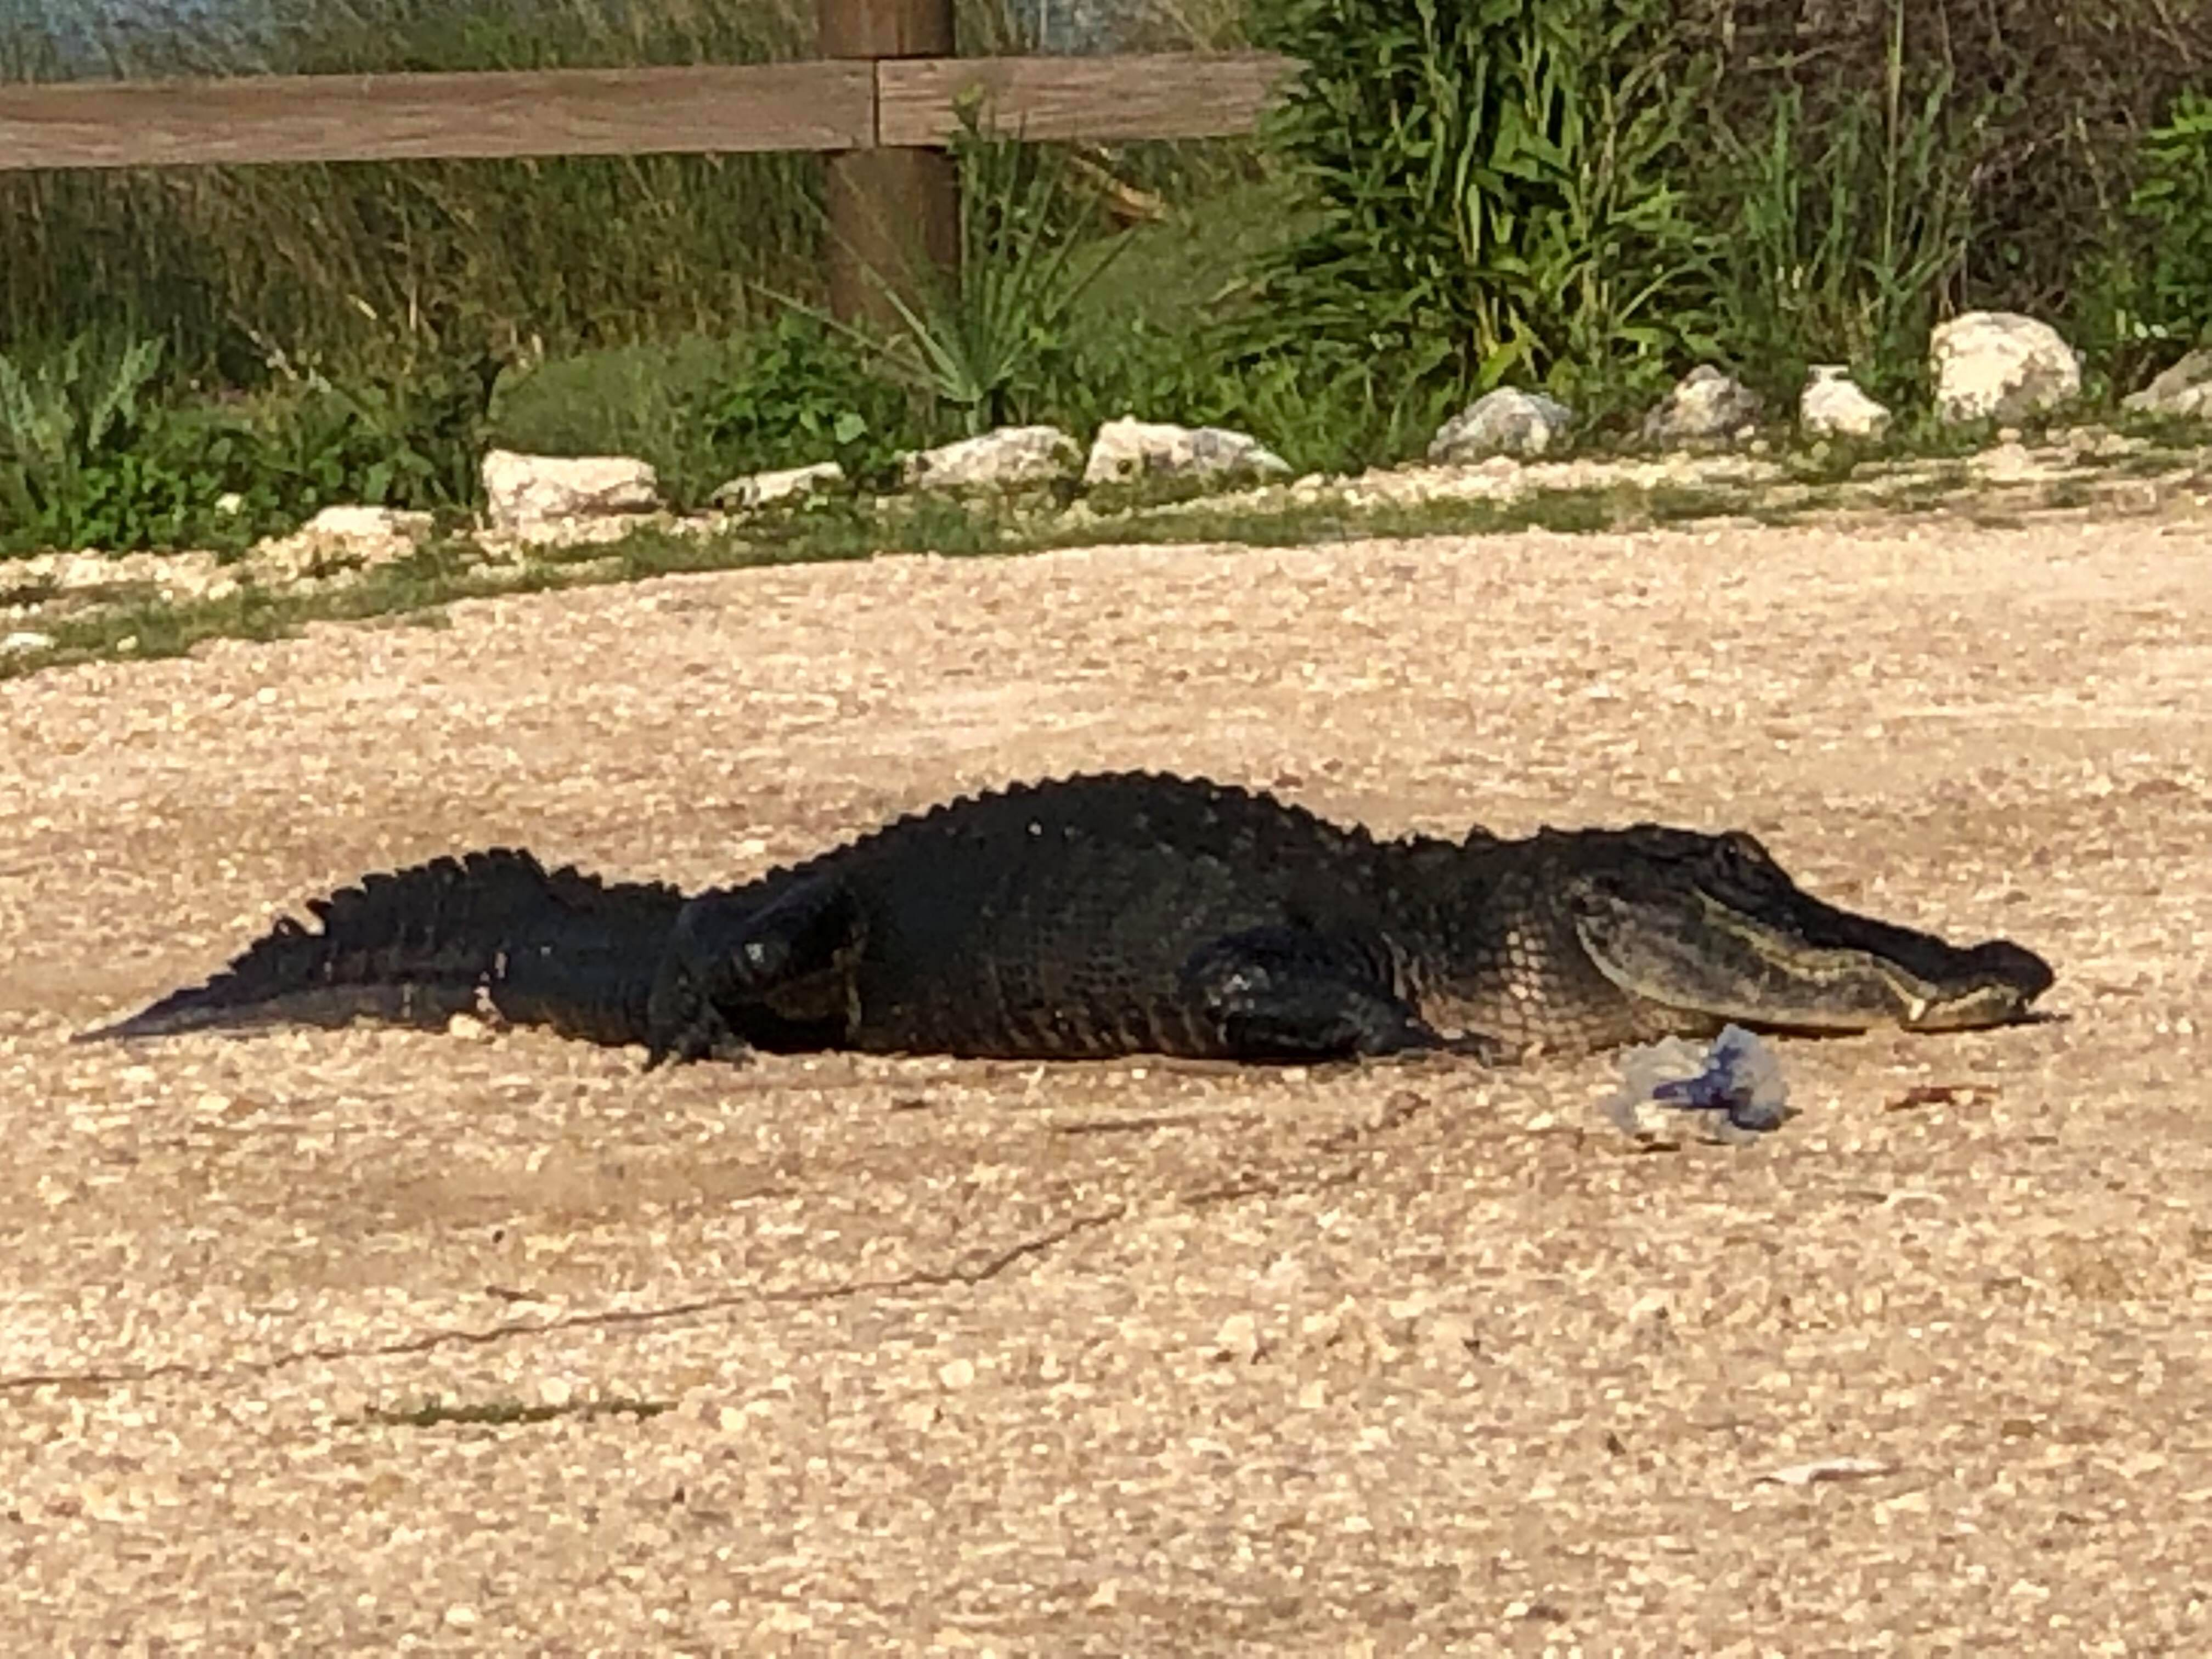 Watch your litter: Florida gator caught eating plastic at wildlife refuge